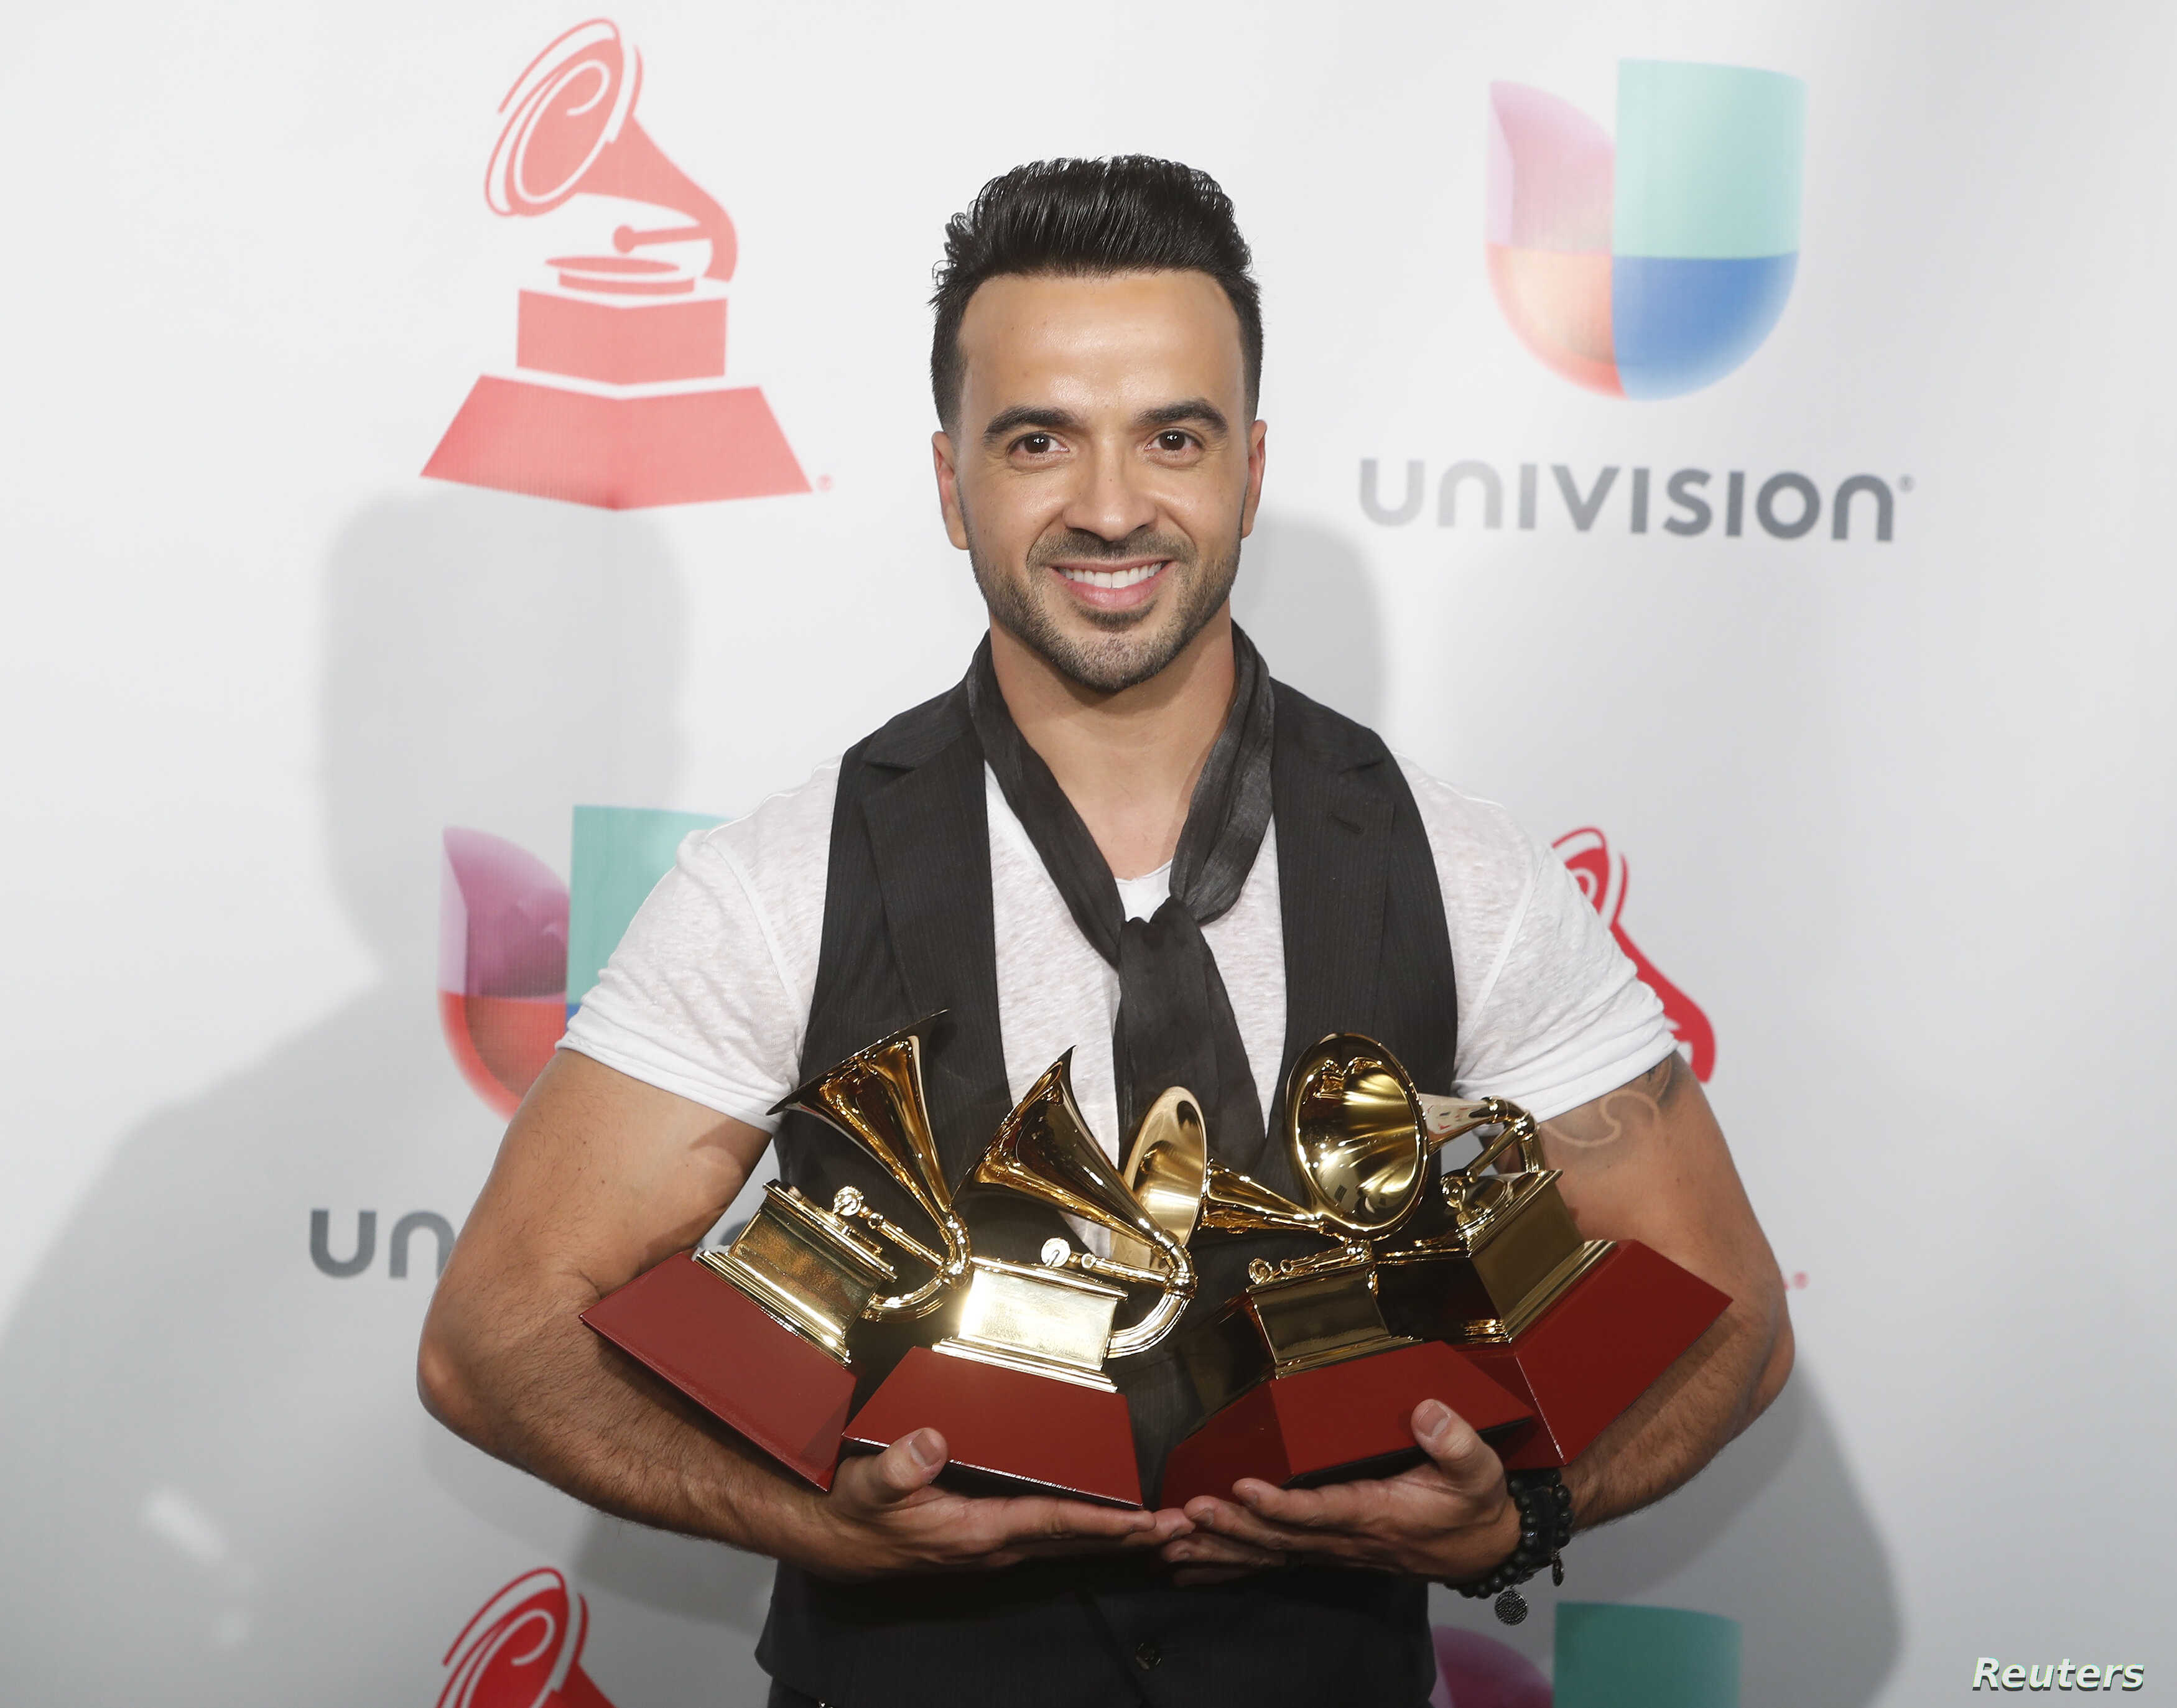 At Latin Grammys, Puerto Rico and 'Despacito' Dominate | Voice of